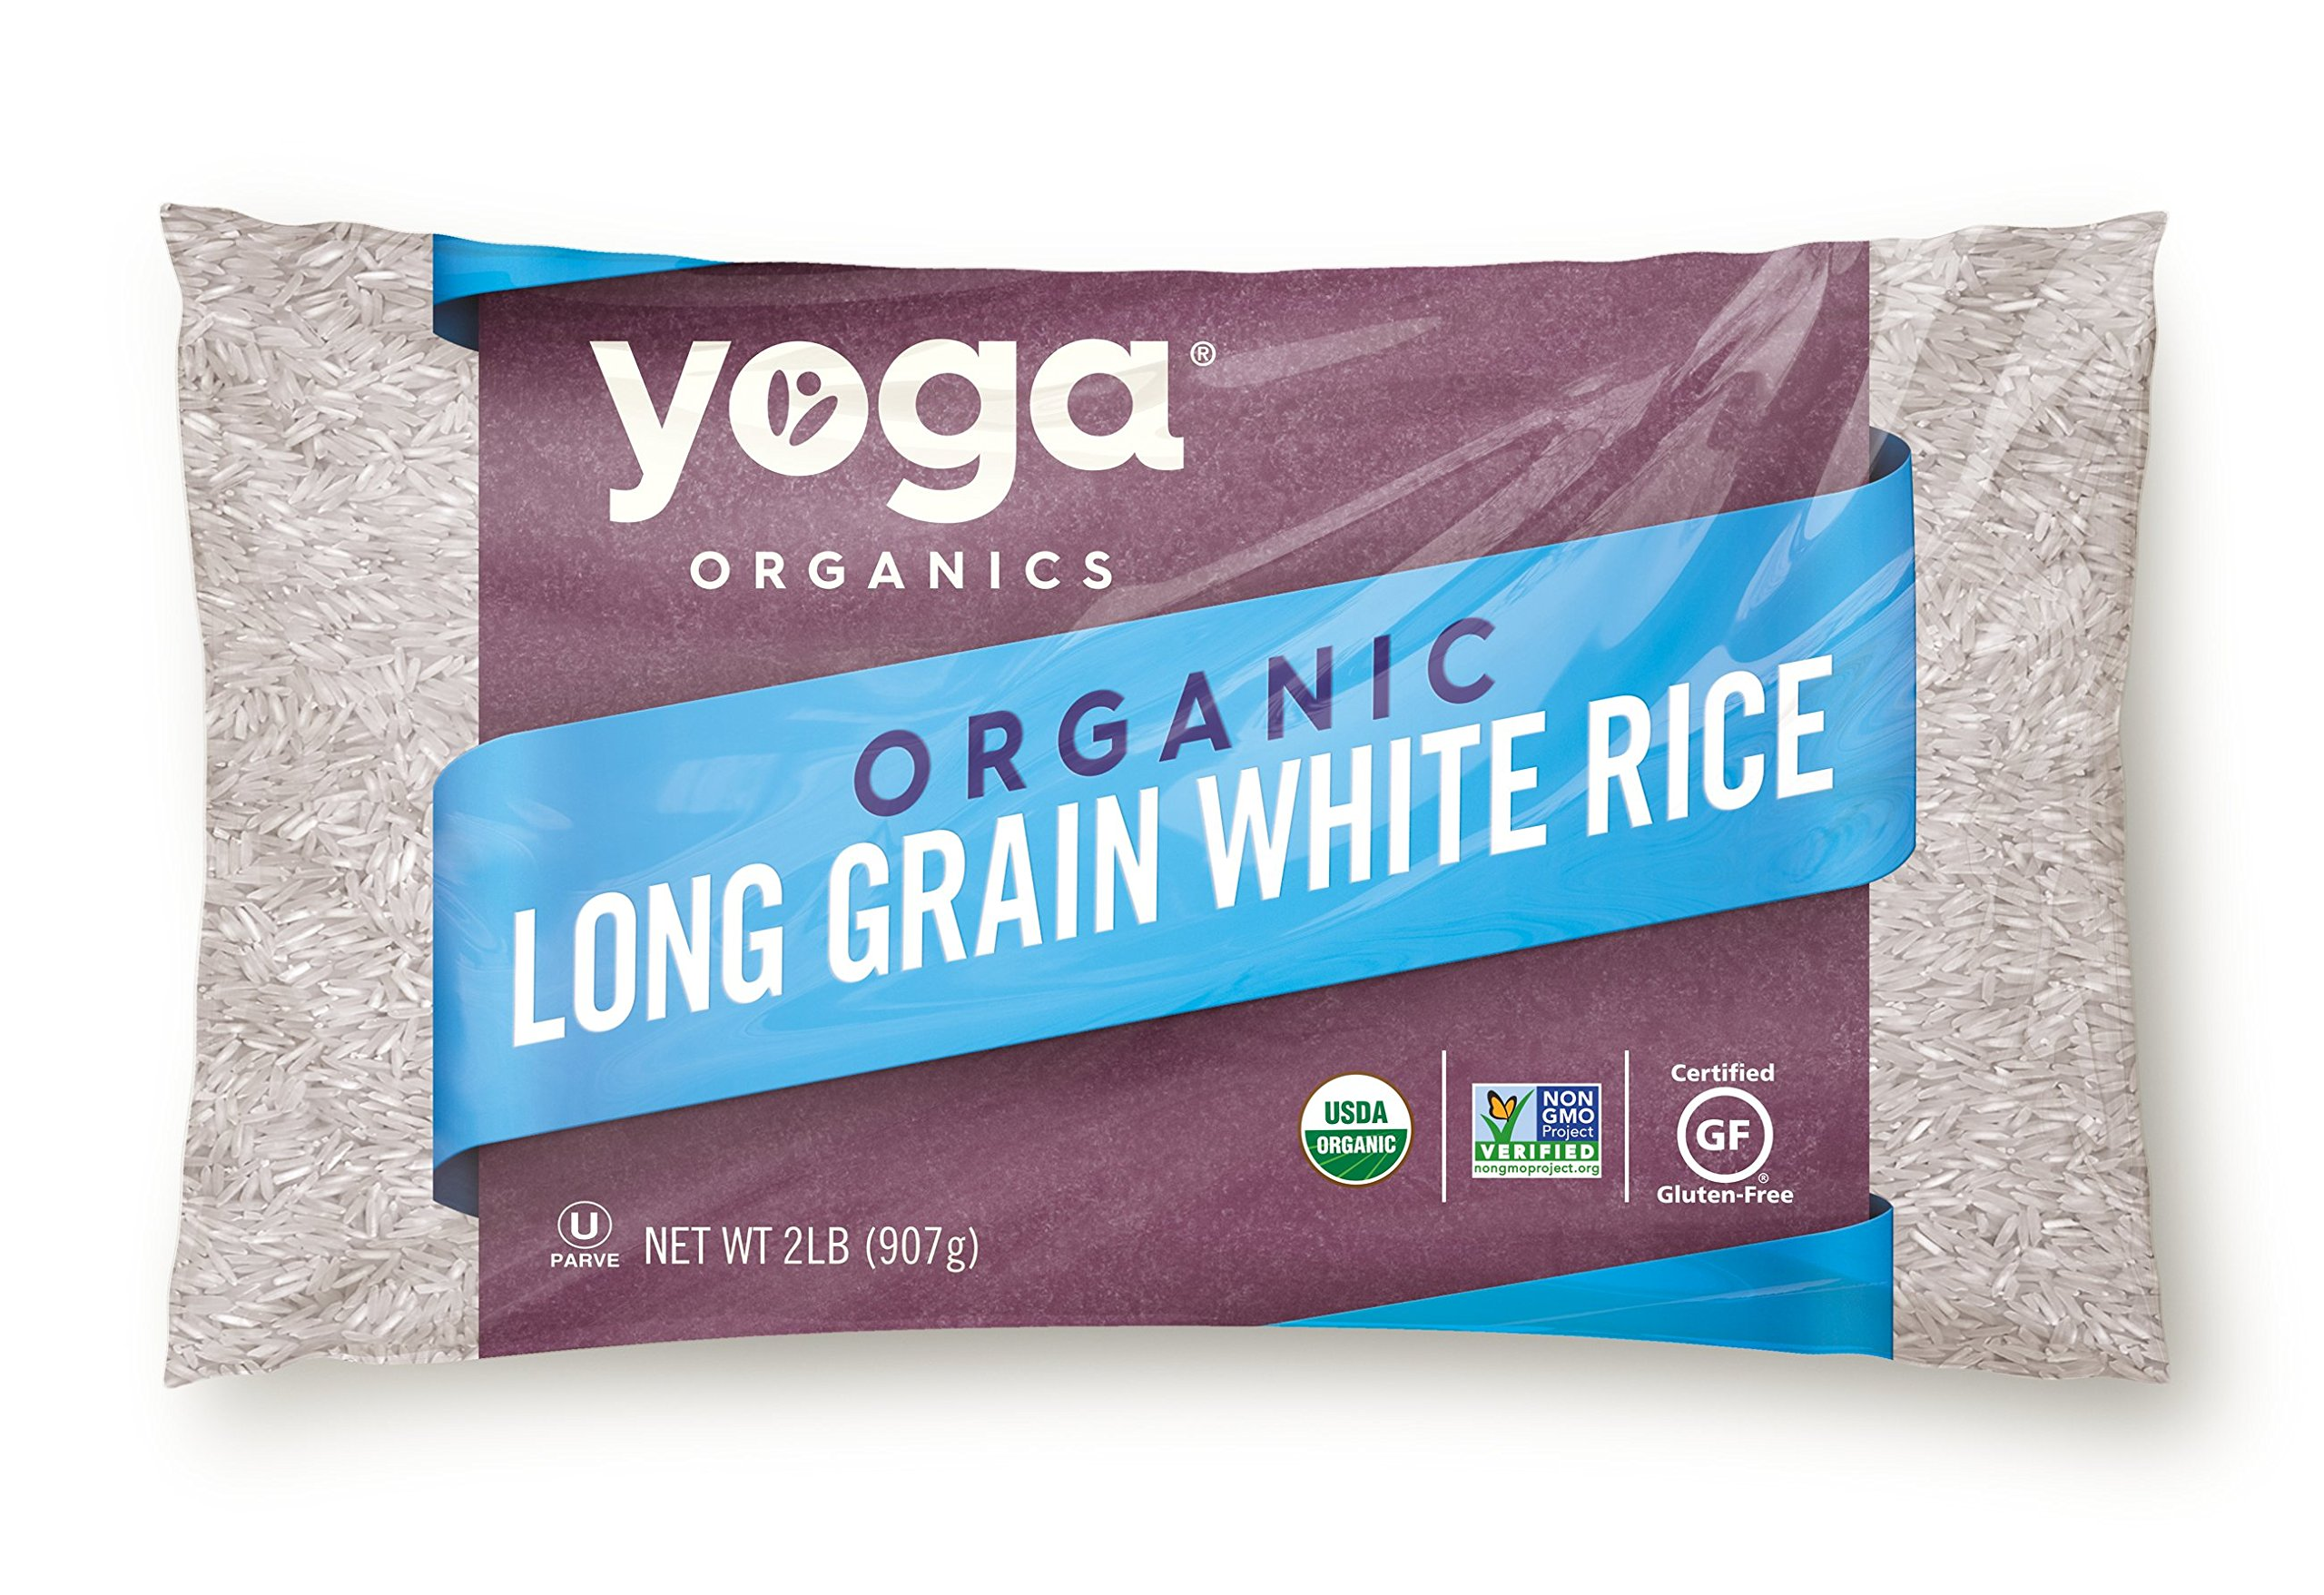 Yoga Organic Long Grain White Rice - GMO, Cholesterol & Sodium Free (32 oz)